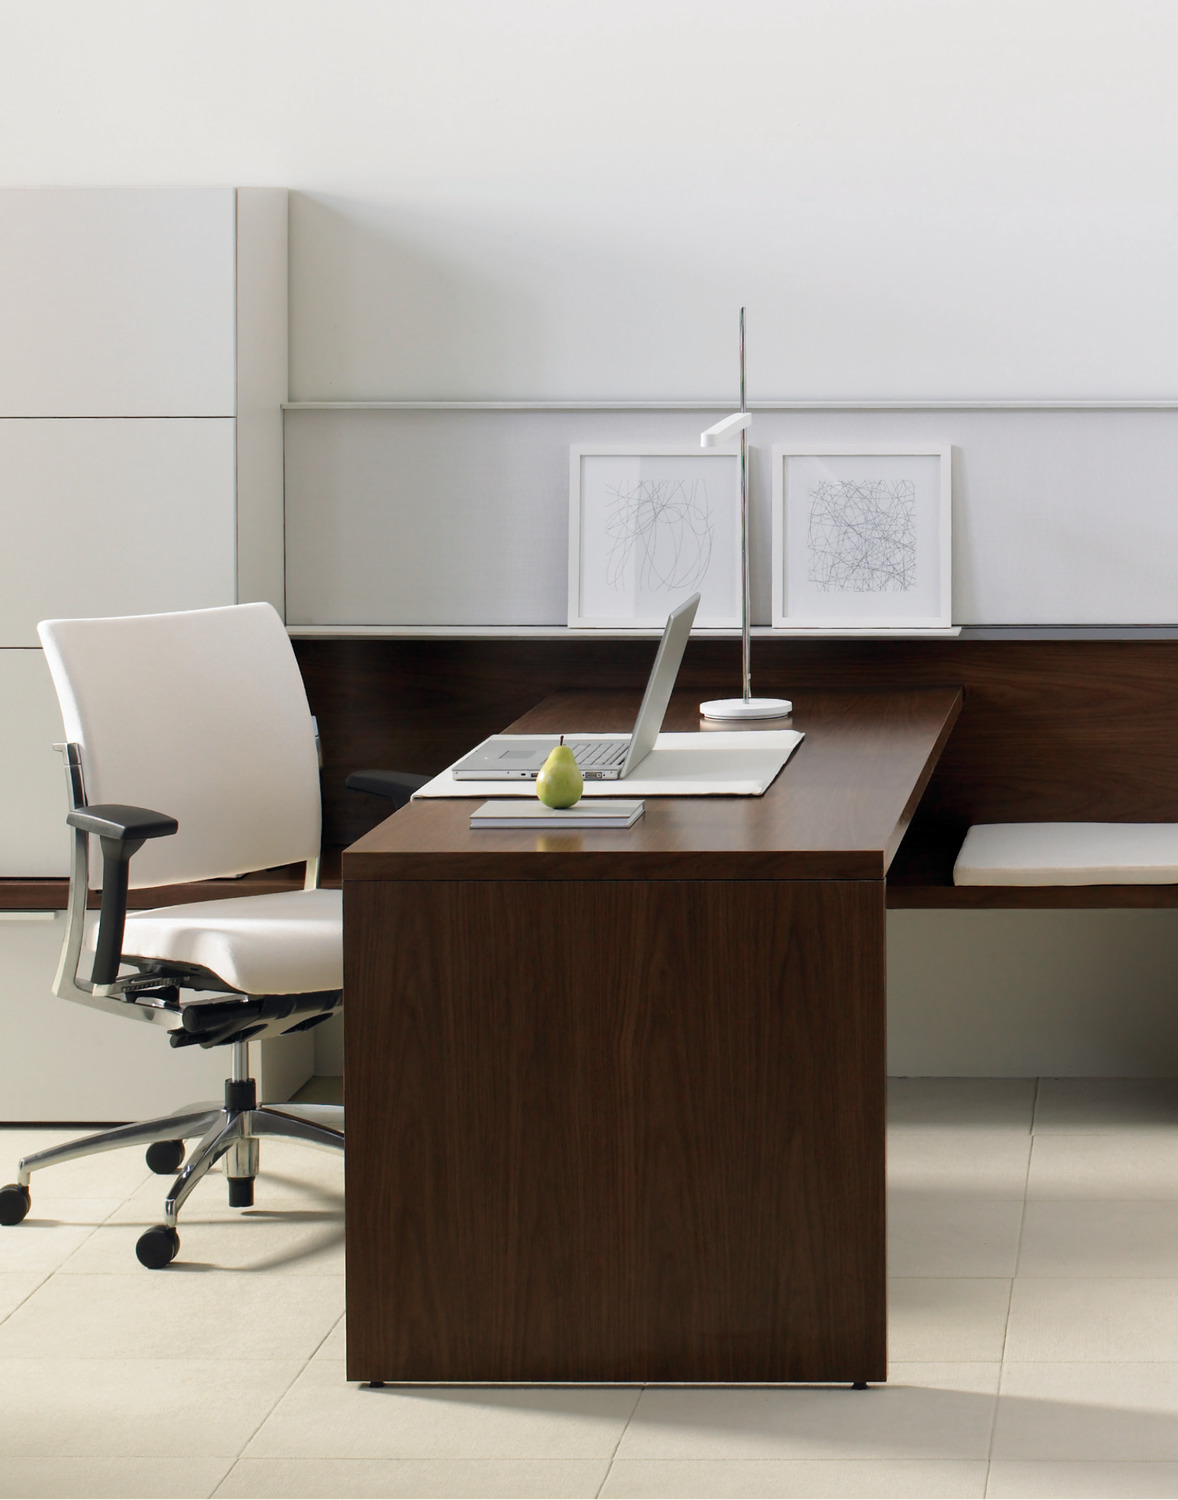 Expansion White & Brown Modern Executive Office Furniture